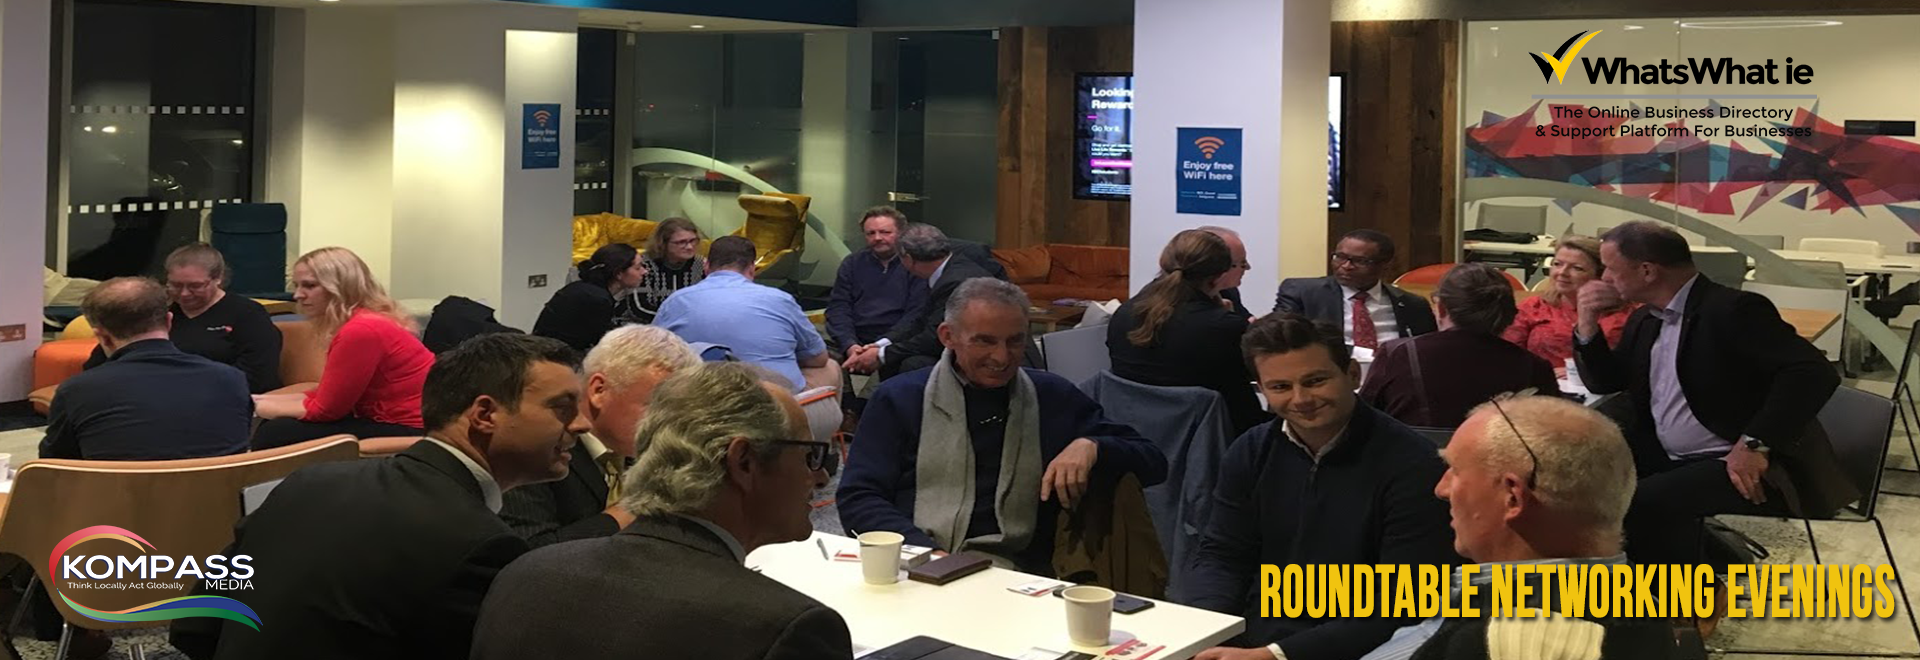 Roundtable Networking Evening